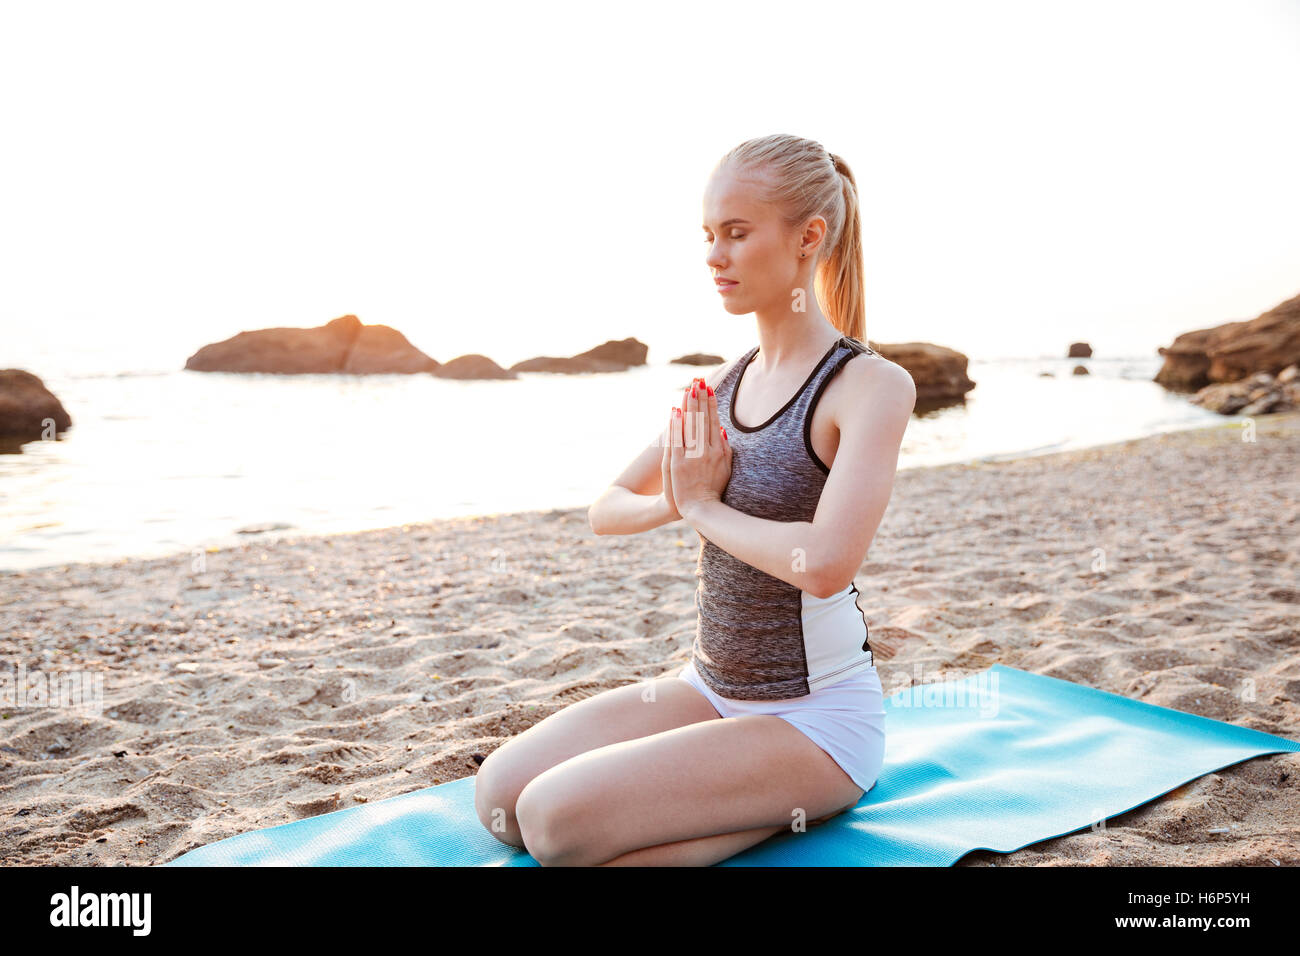 Portrait of relaxed young woman meditating outdoors on beach - Stock Image